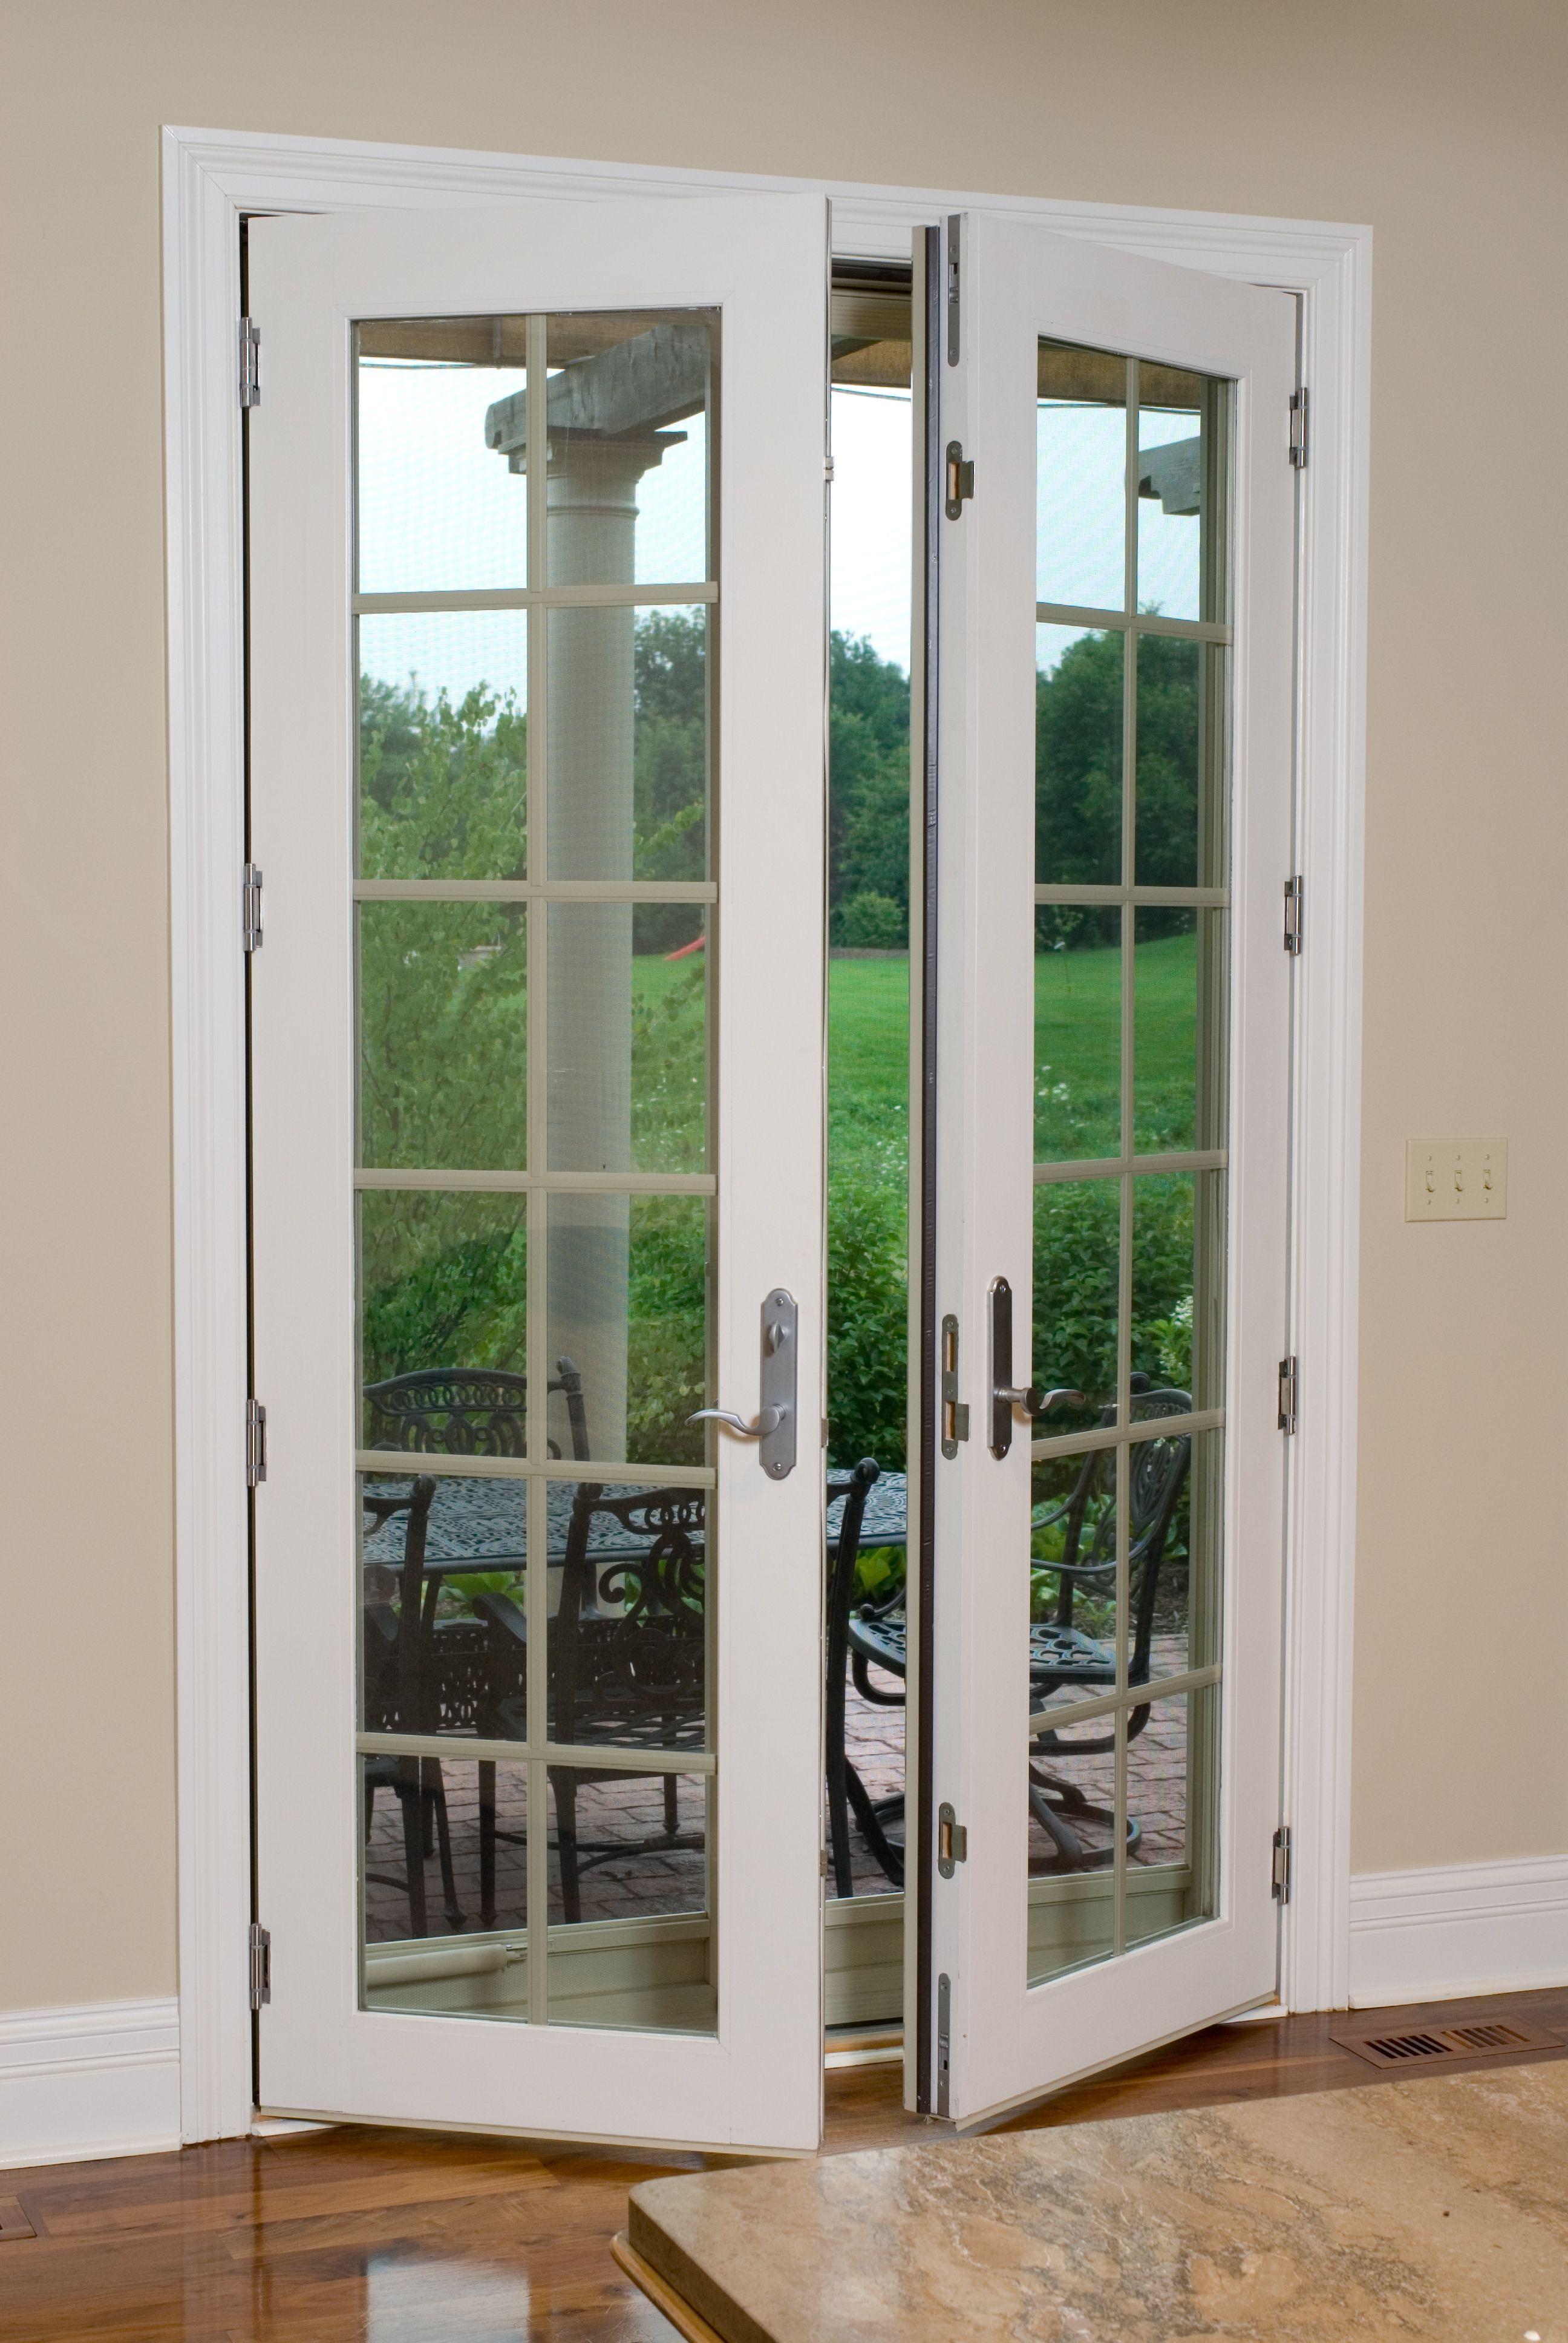 Casco Patio Doors Embrace The Attributes That Shine Brightest In The Midwest With Quality And Affordabilit Exterior Doors Patio Doors Windows Doors